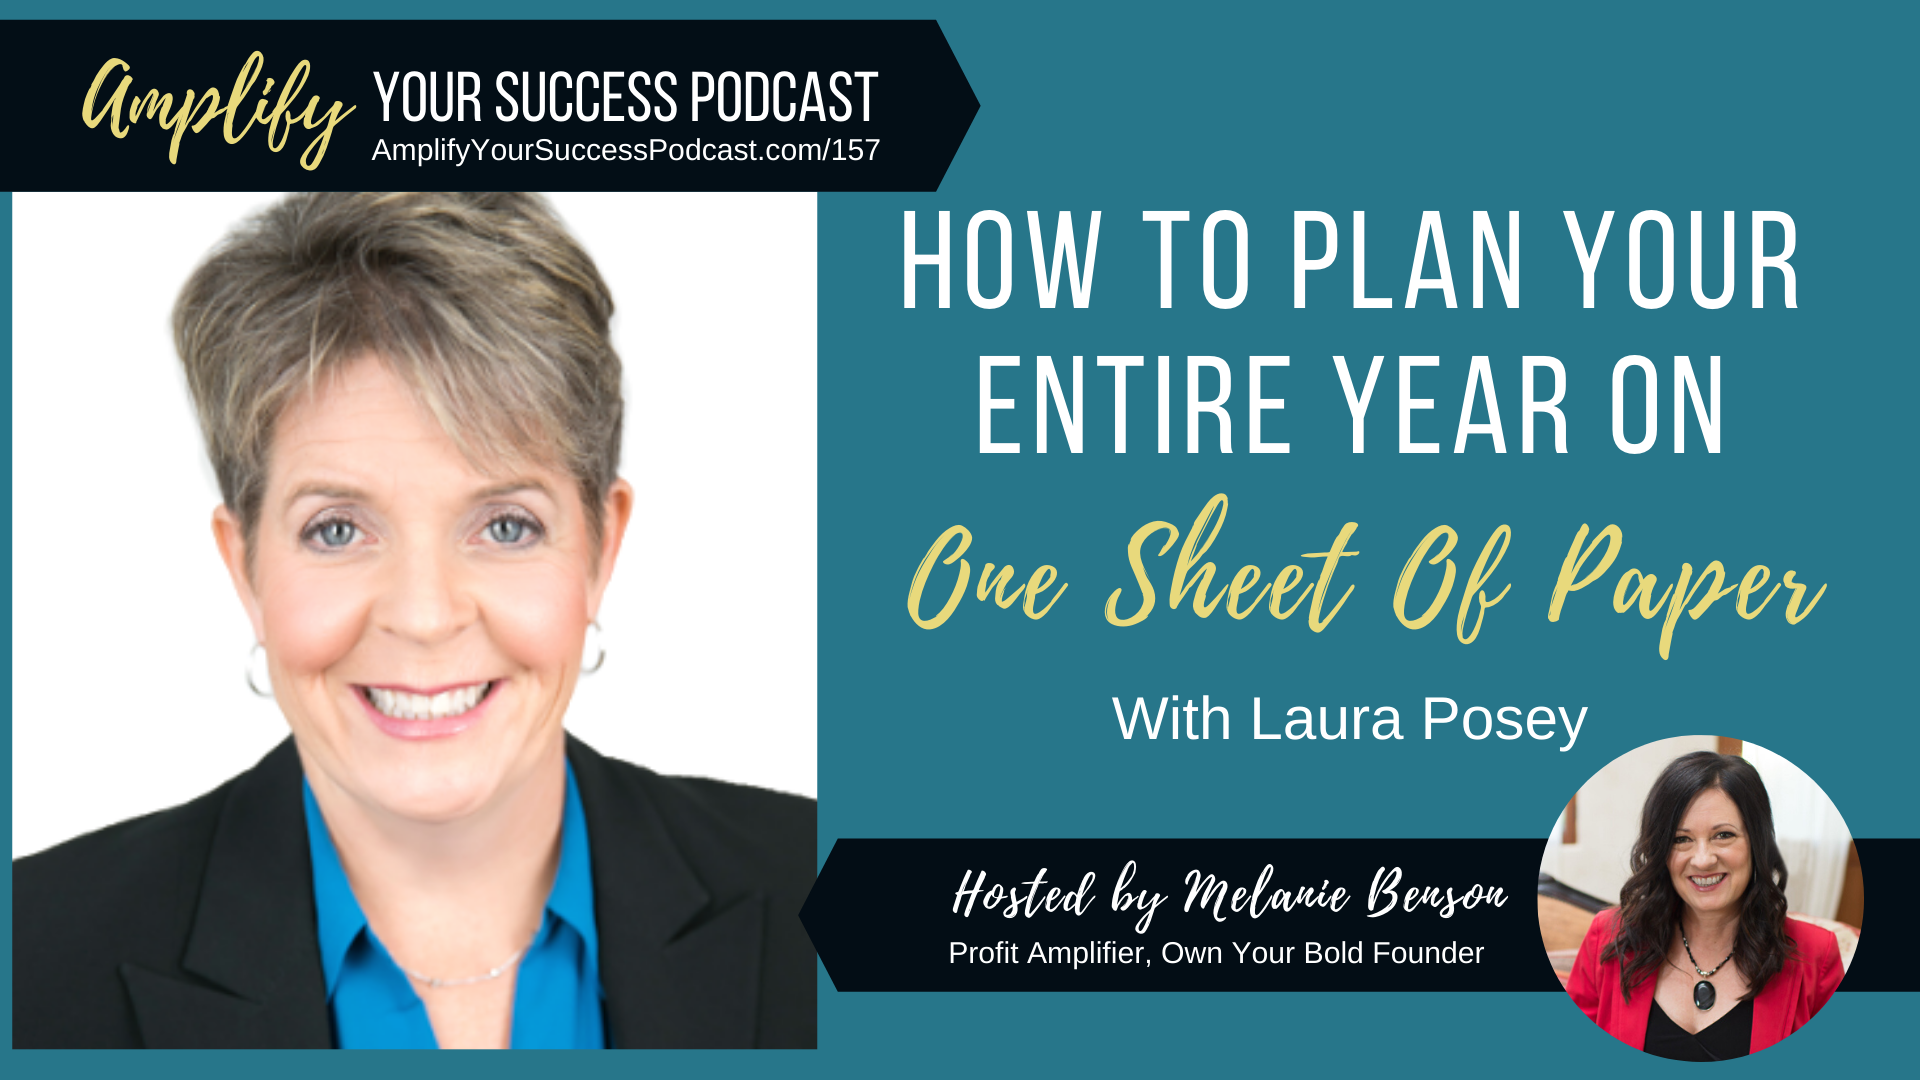 How To Business Plan Your Entire Year On One Sheet Of Paper with Laura Posey